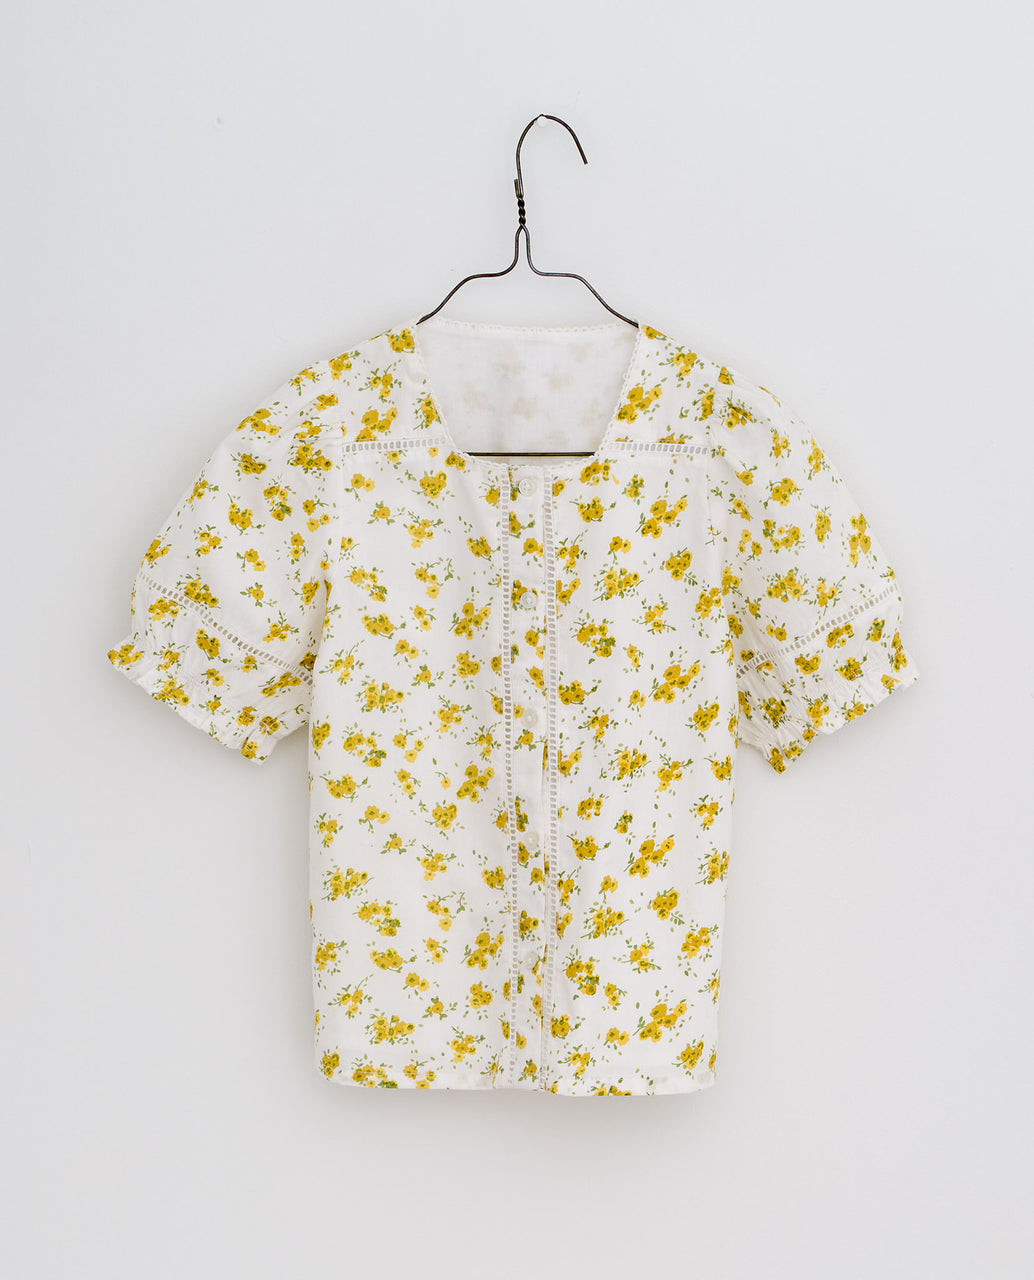 Hetty Blouse - Buttercup floral